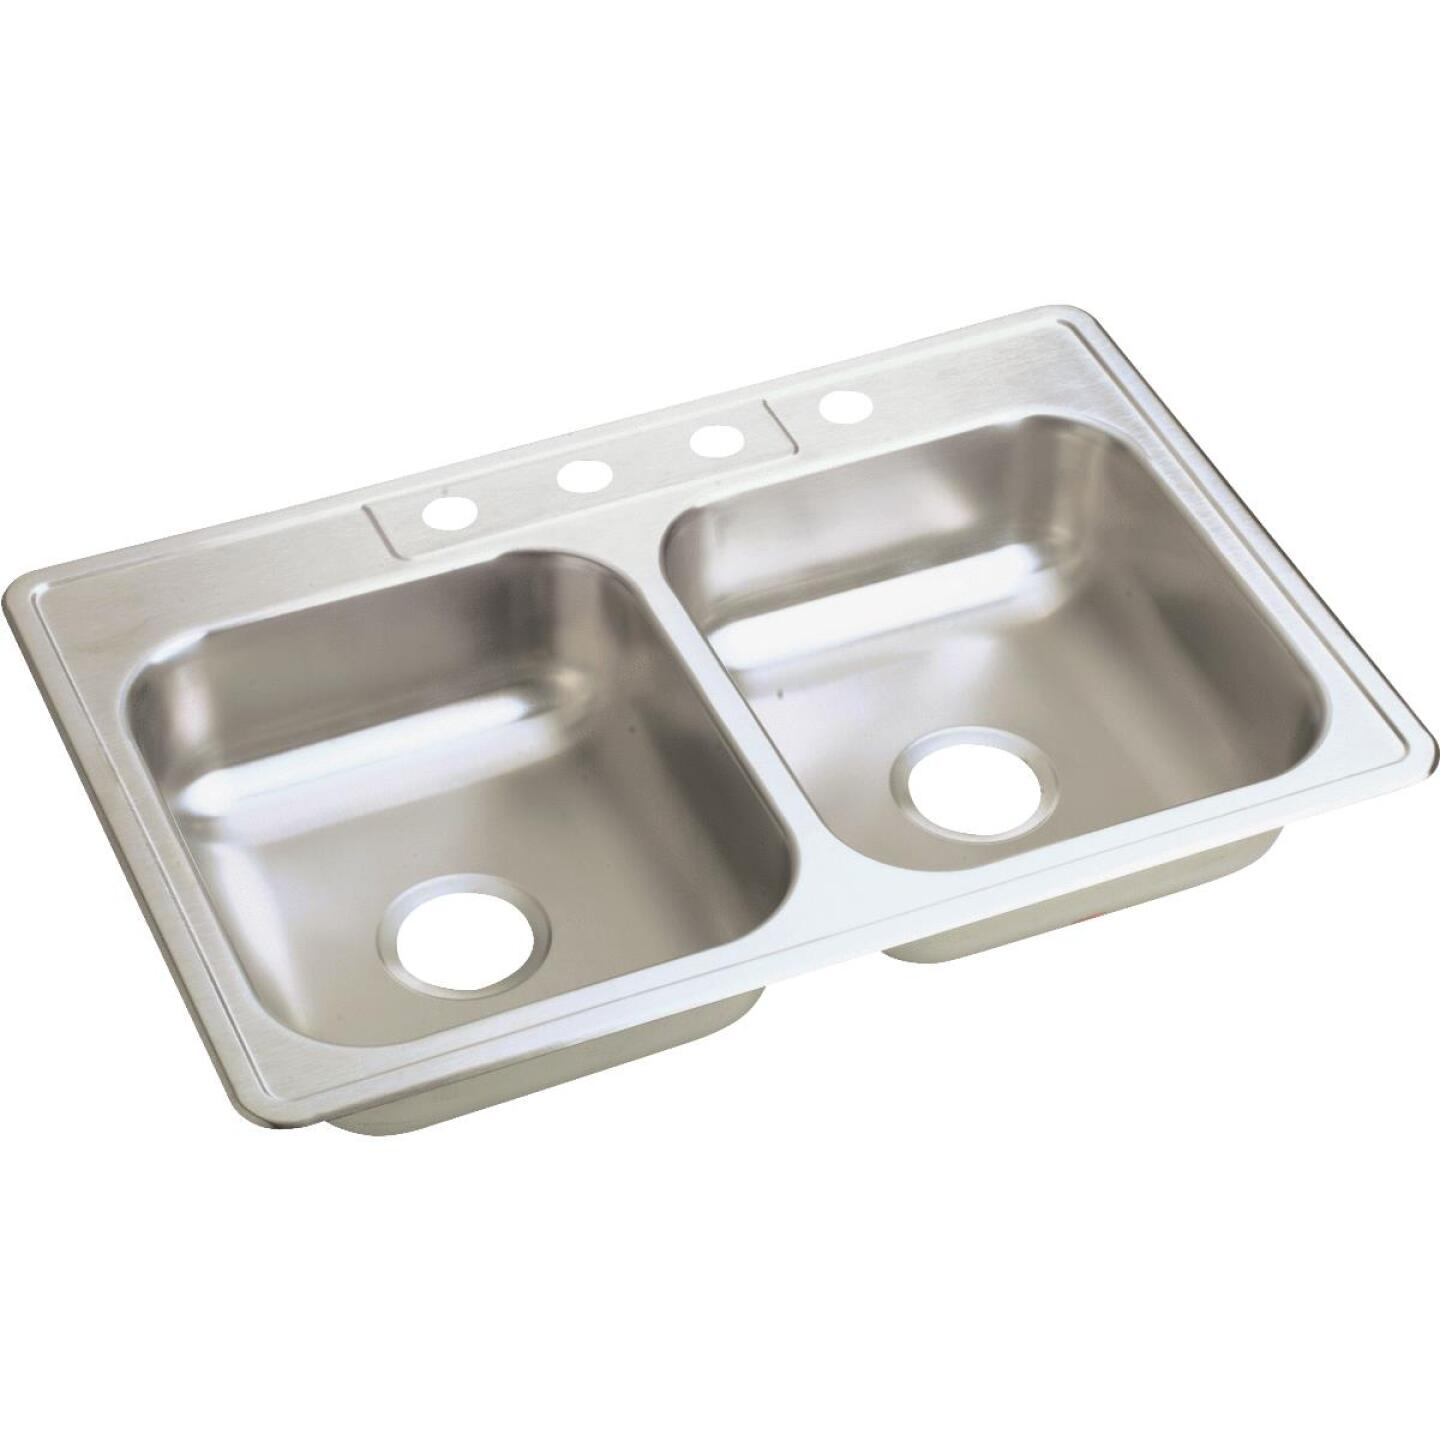 Elkay Double Bowl 33 In. x 22 In. x 6 In. Deep Luster Stainless Steel Kitchen Sink Image 1